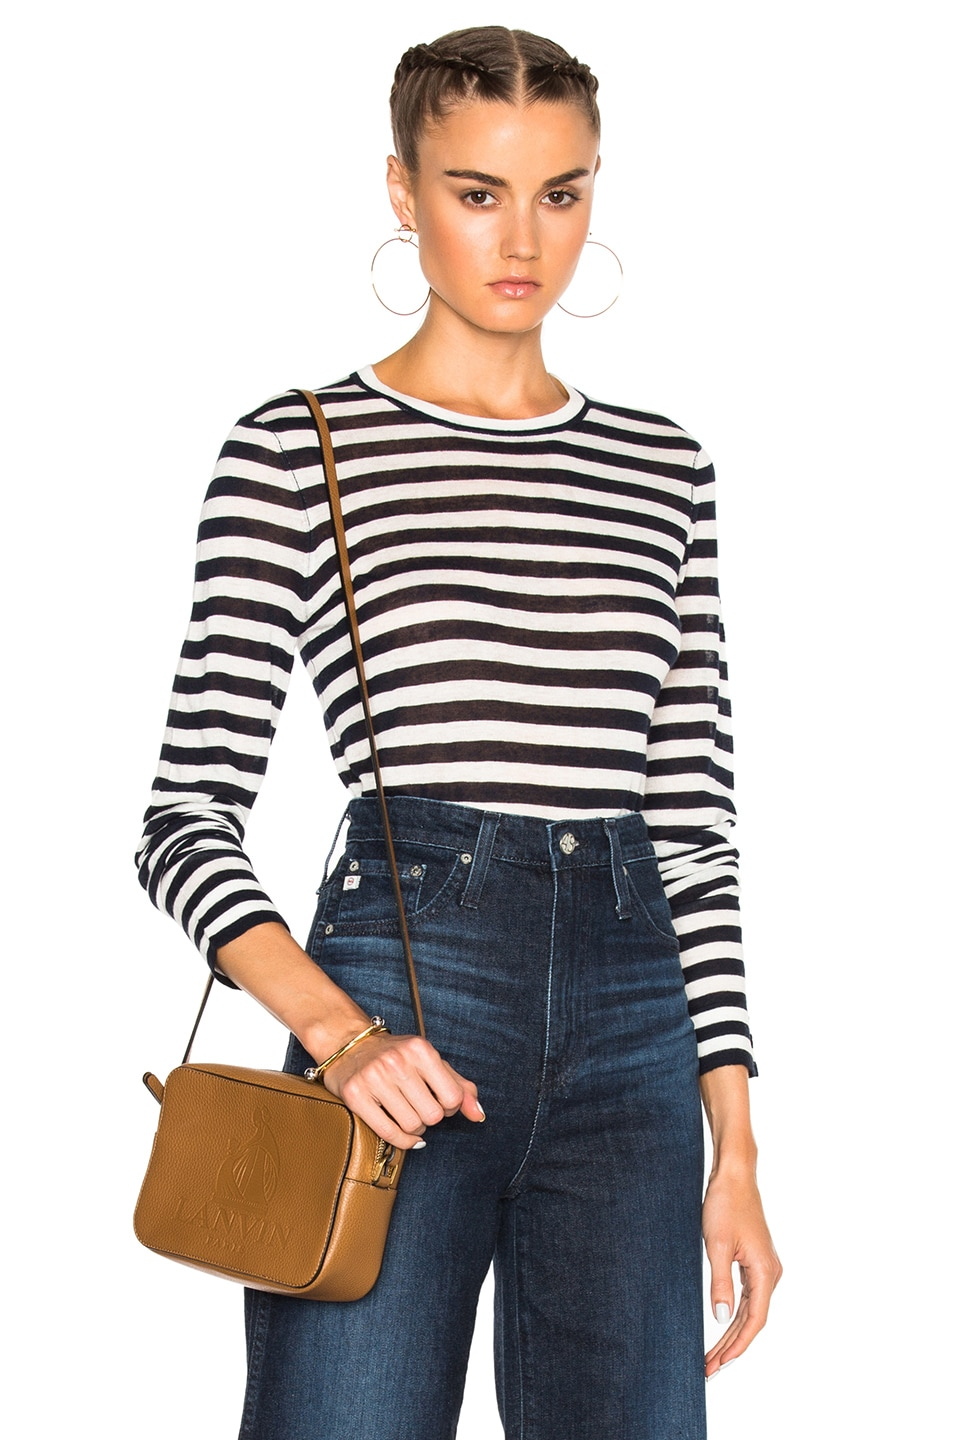 Image 1 of Jenni Kayne Cropped Crew Sweater in White & Navy